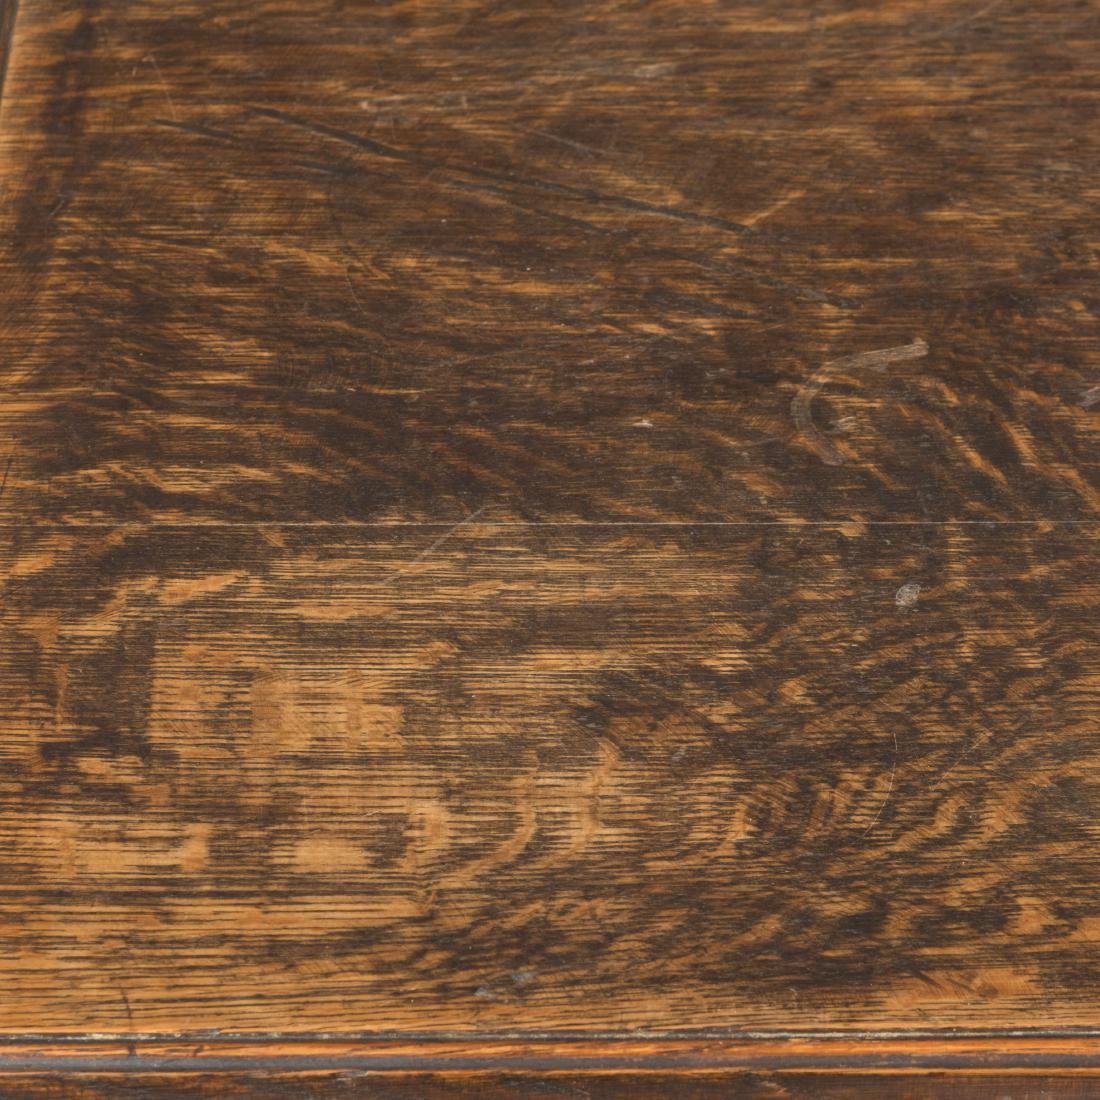 Oak Library Table with Footed Legs - 5